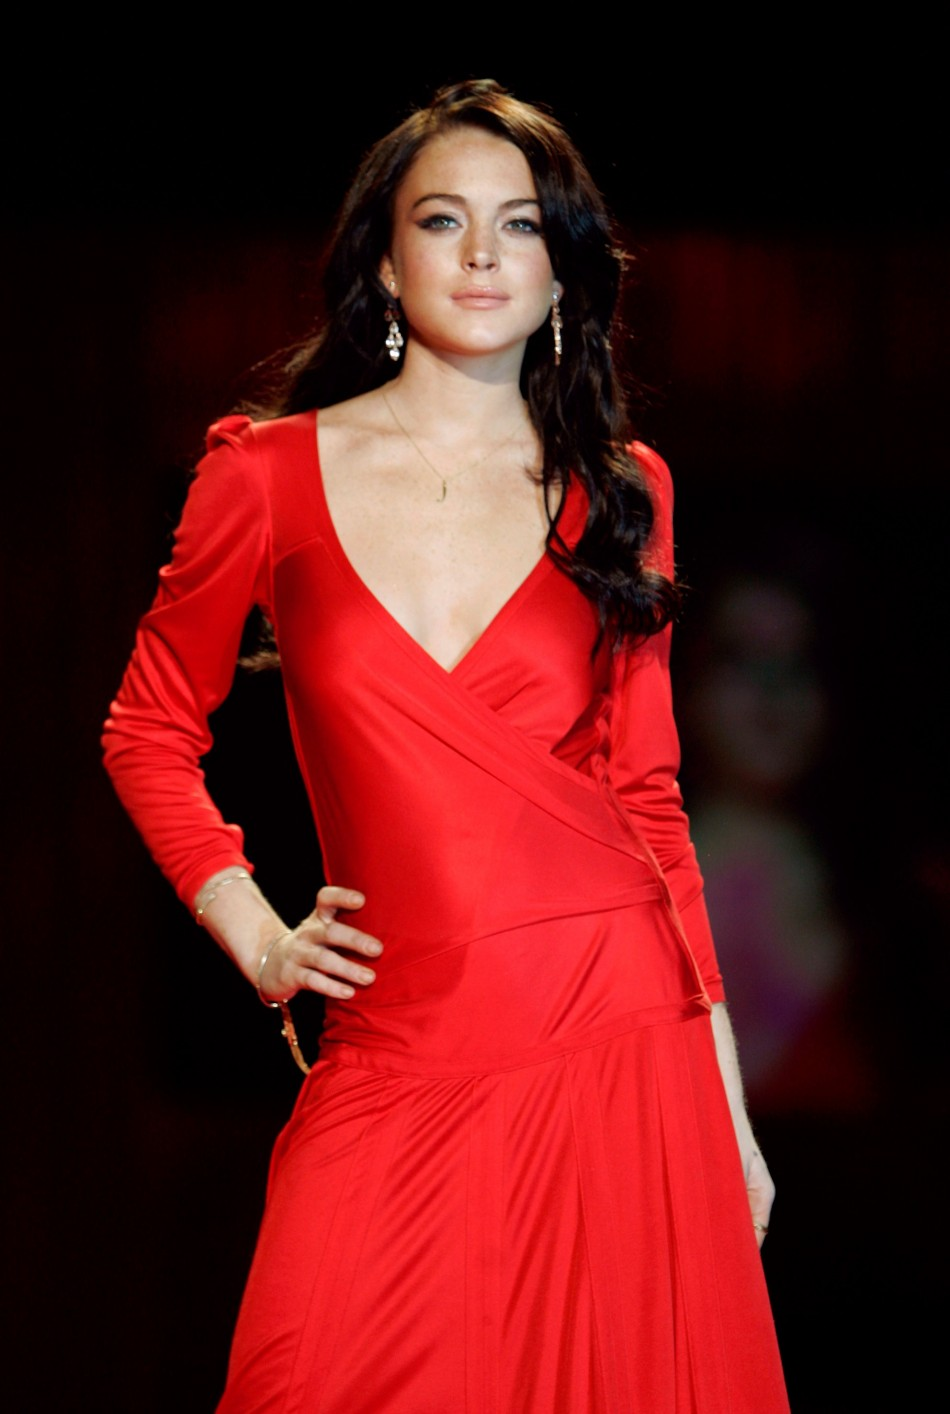 Lindsay Lohan poses in a Calvin Klein dress during the Heart Truth Red Dress fashion show at New York Fashion Week